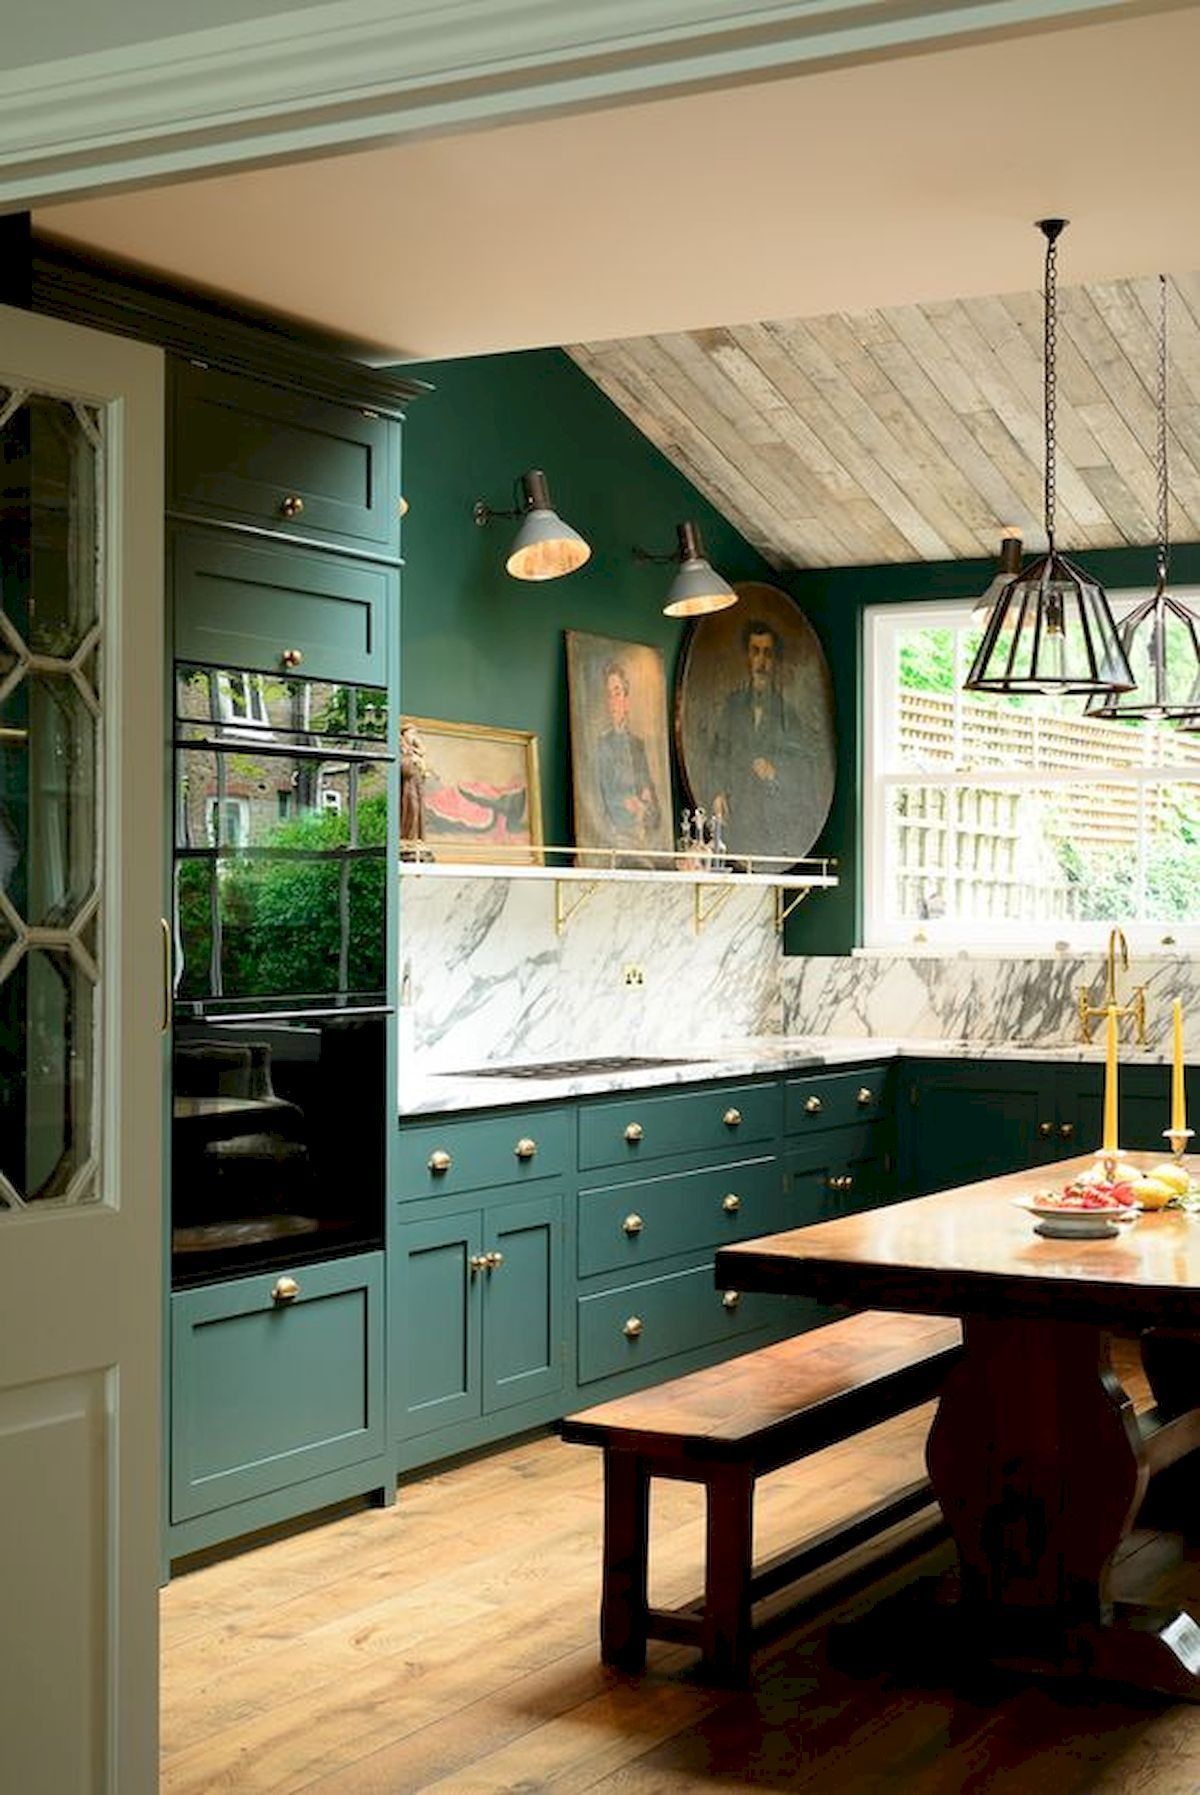 10 best colors for painting kitchen cabinets decor ideas kitchen rh pinterest com Best Kitchen Colors with Oak Cabinets Top Colors for Kitchen Cabinets